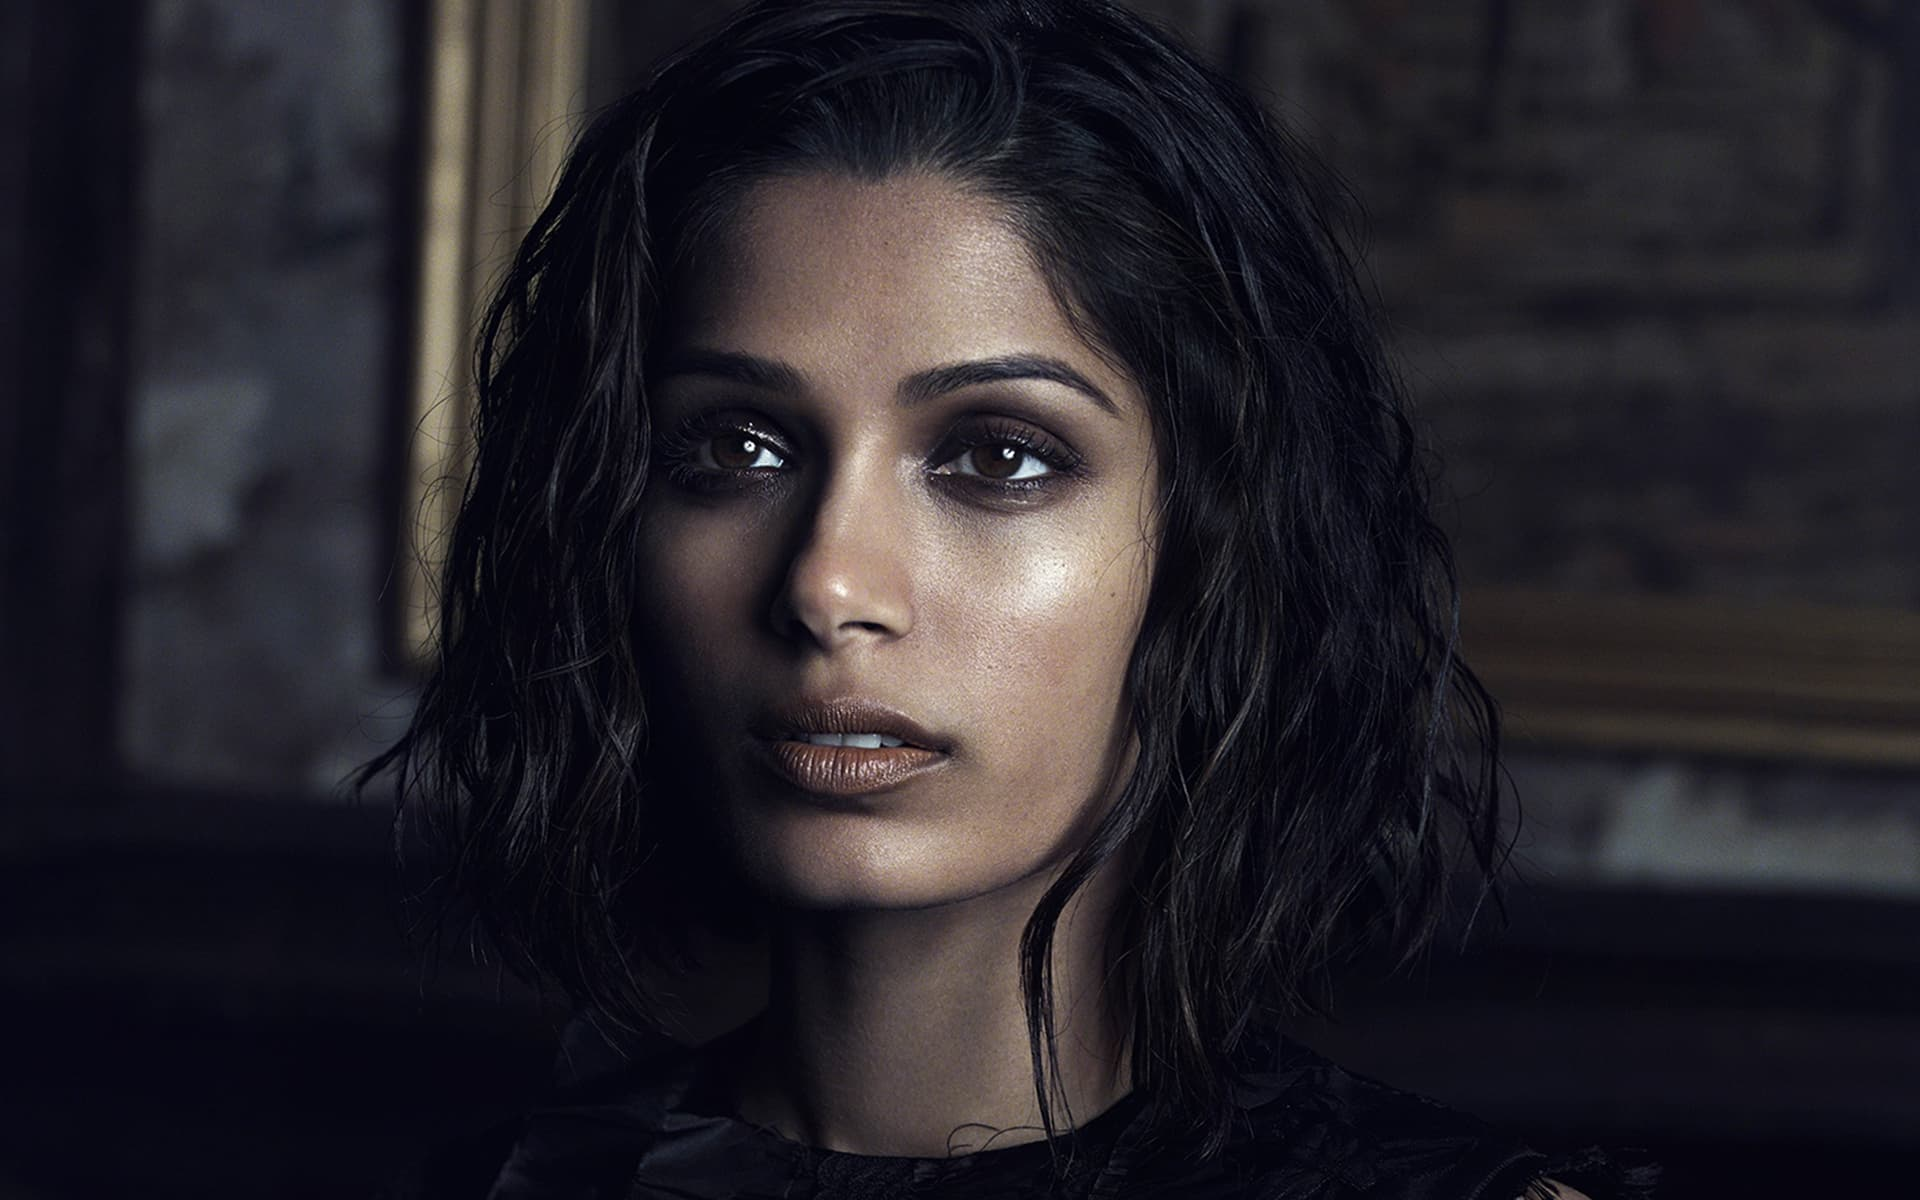 Car Games 2016 >> 14+ Freida Pinto wallpapers High Quality Download